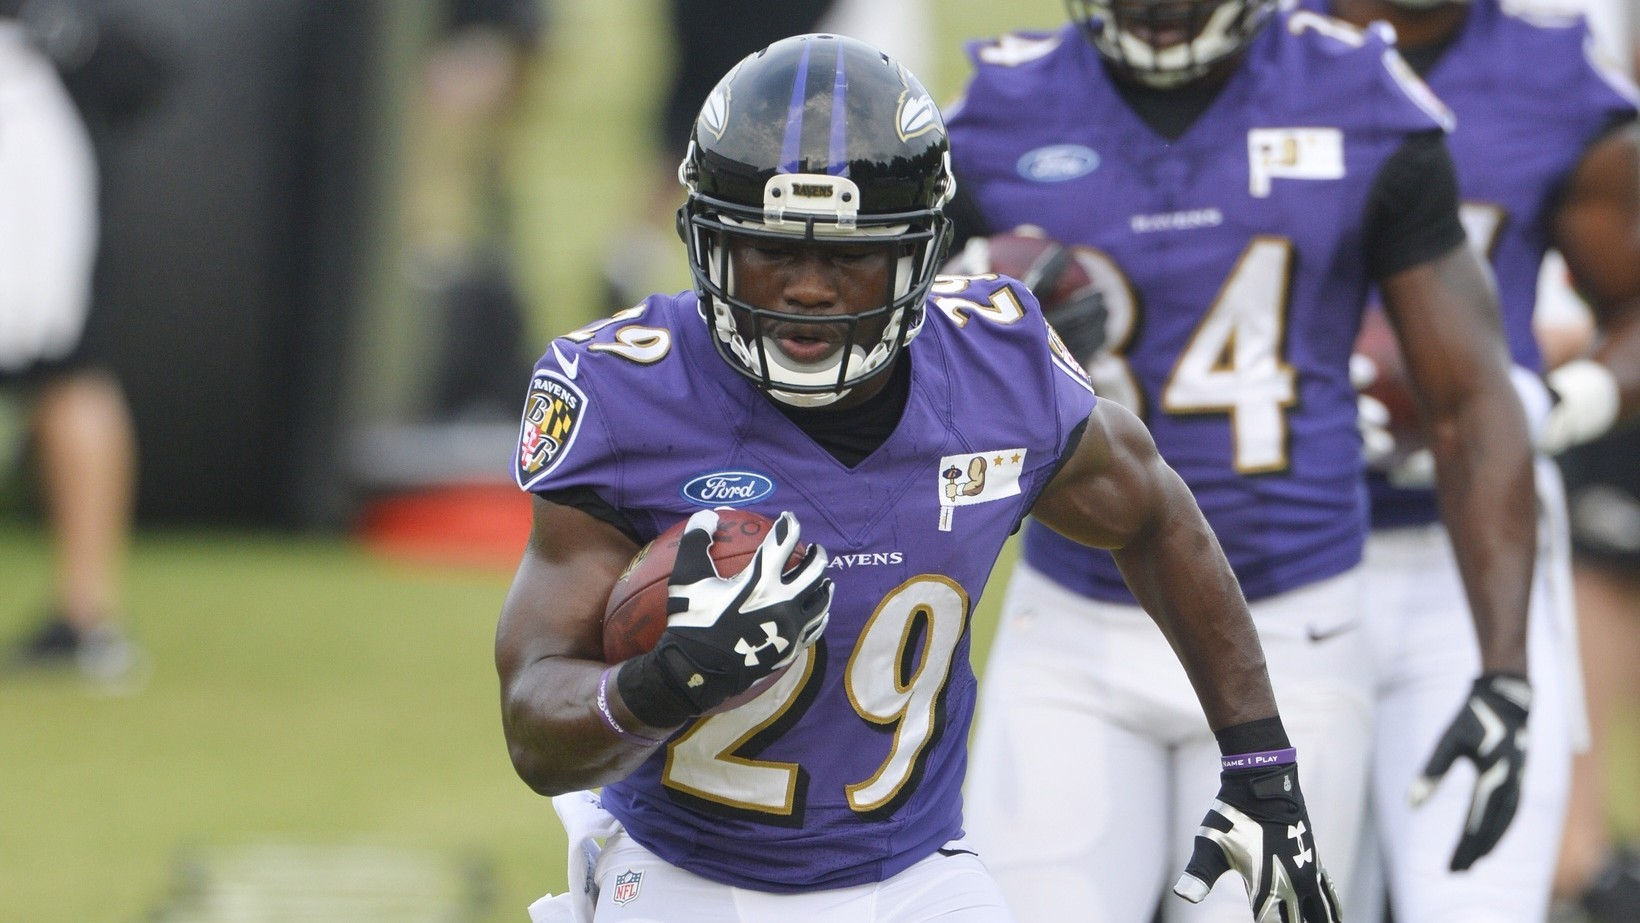 Polarizing Fantasy Players: Justin Forsett